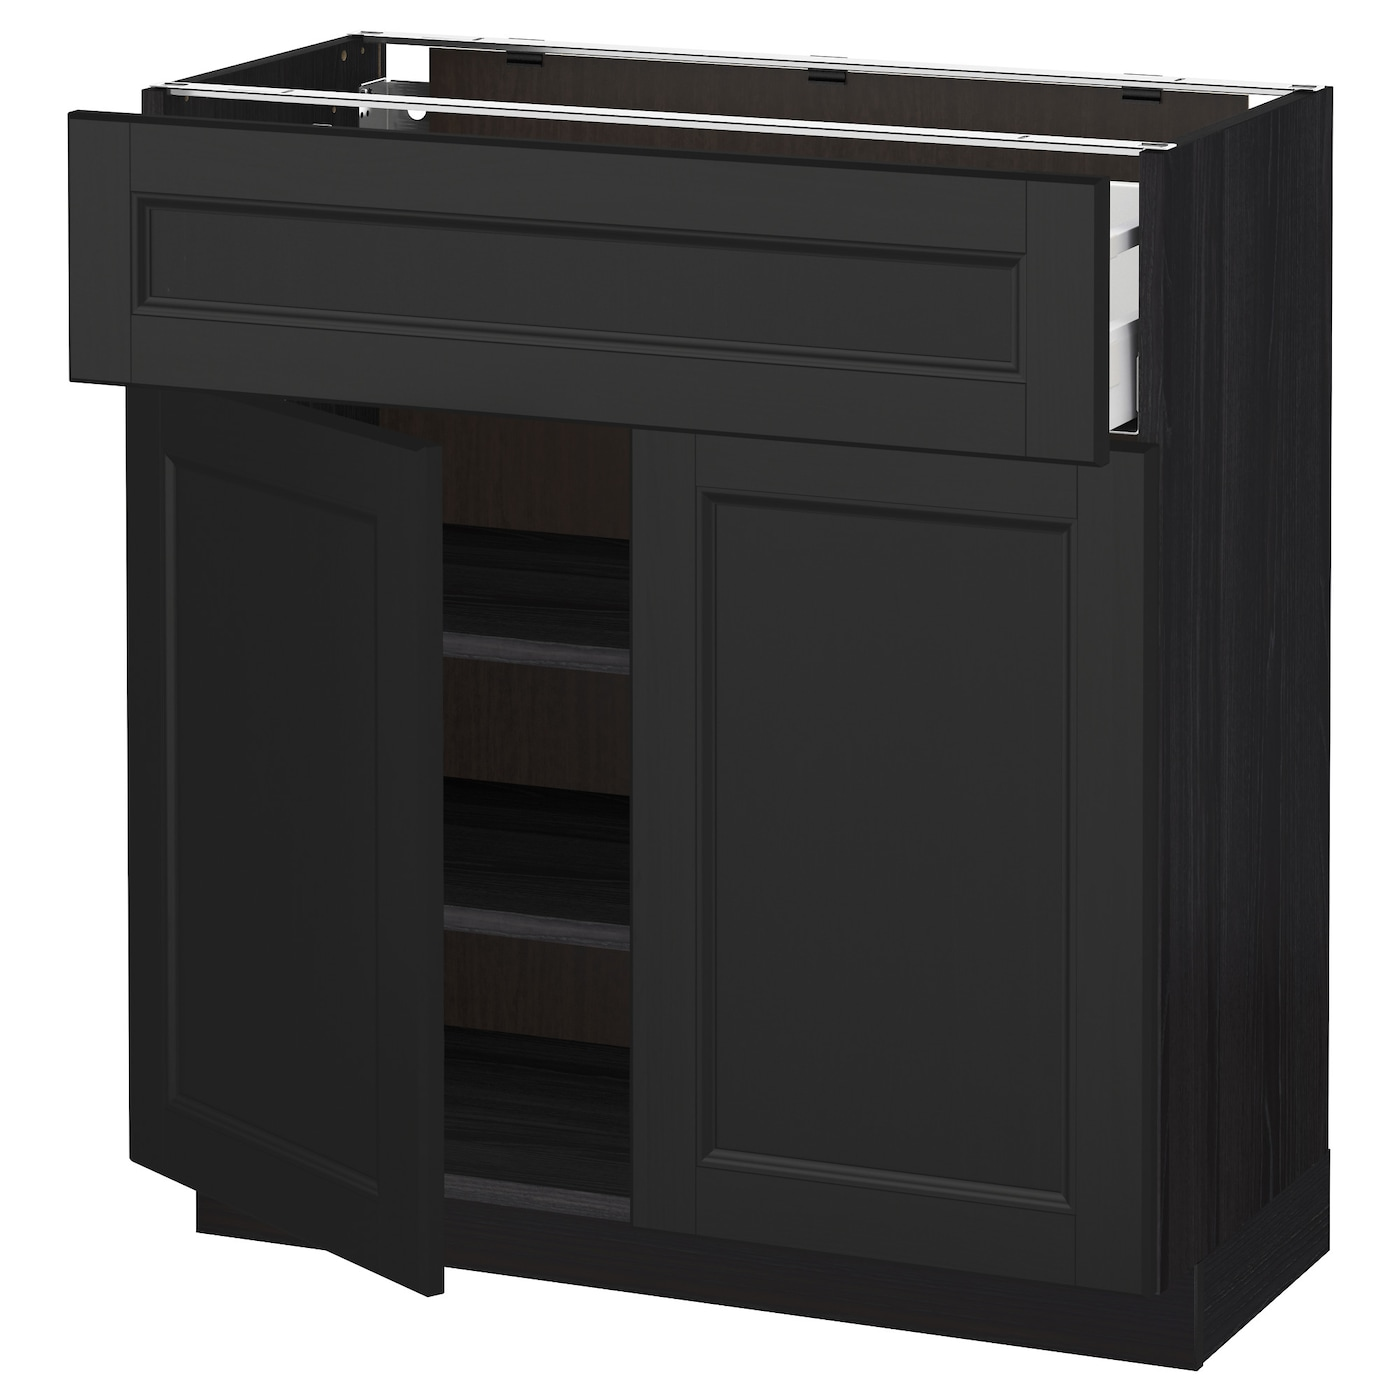 Ikea Kitchen Laxarby: METOD/MAXIMERA Base Cabinet With Drawer/2 Doors Black